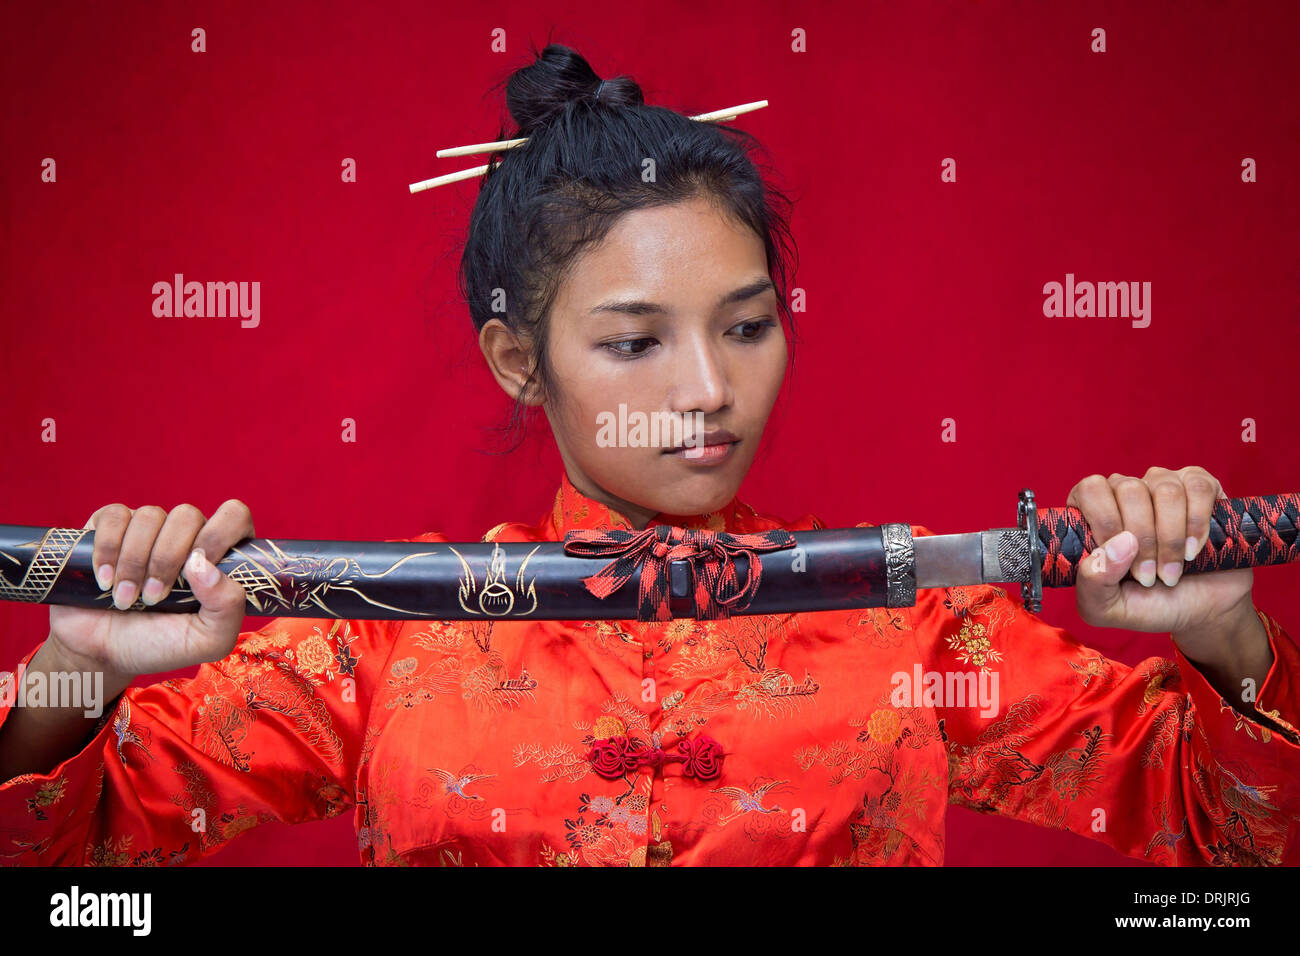 Asian woman holding a sword Stock Photo